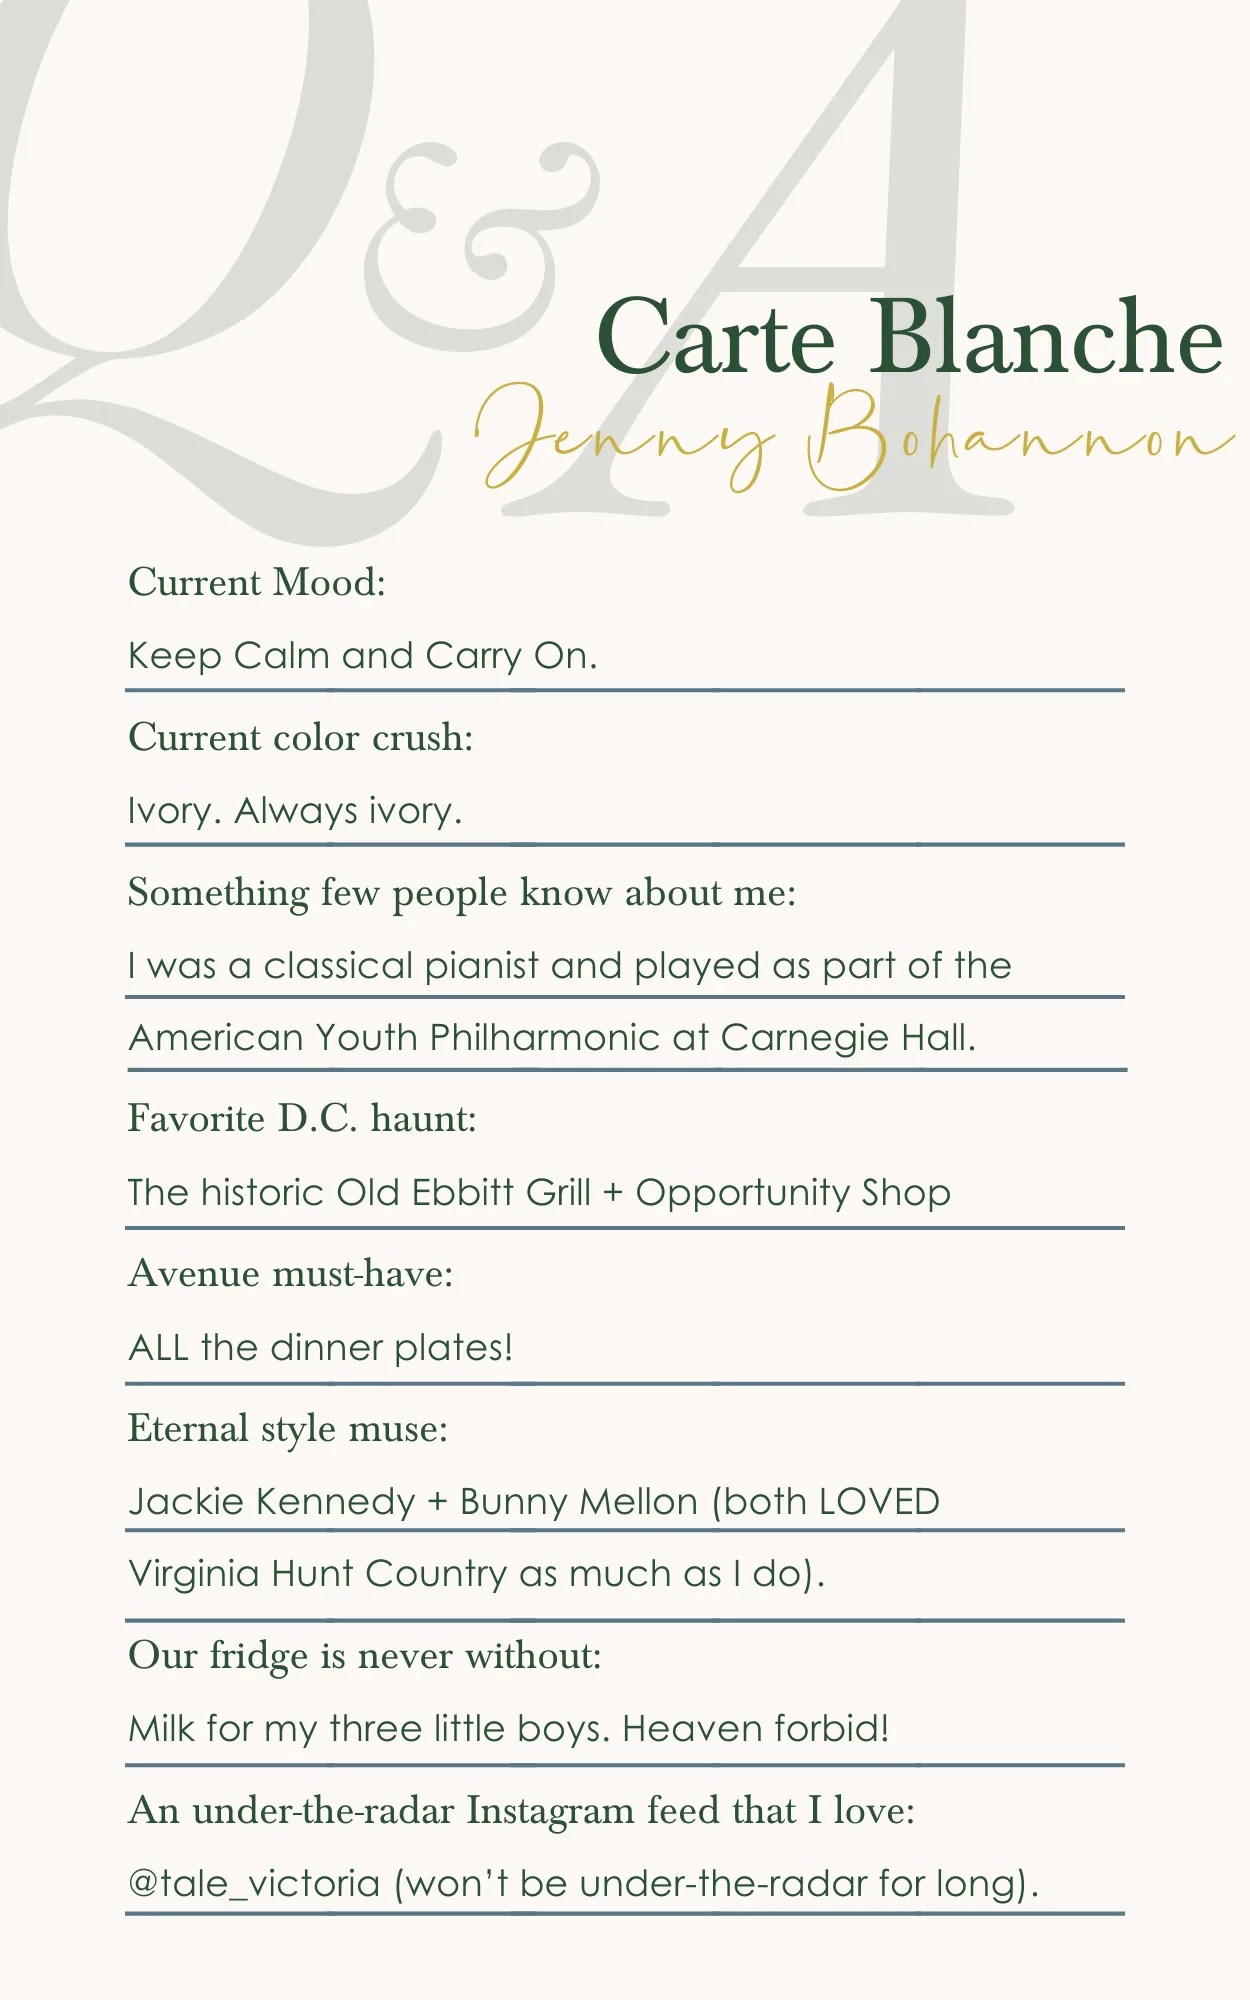 carte blanche with jenny bohannon